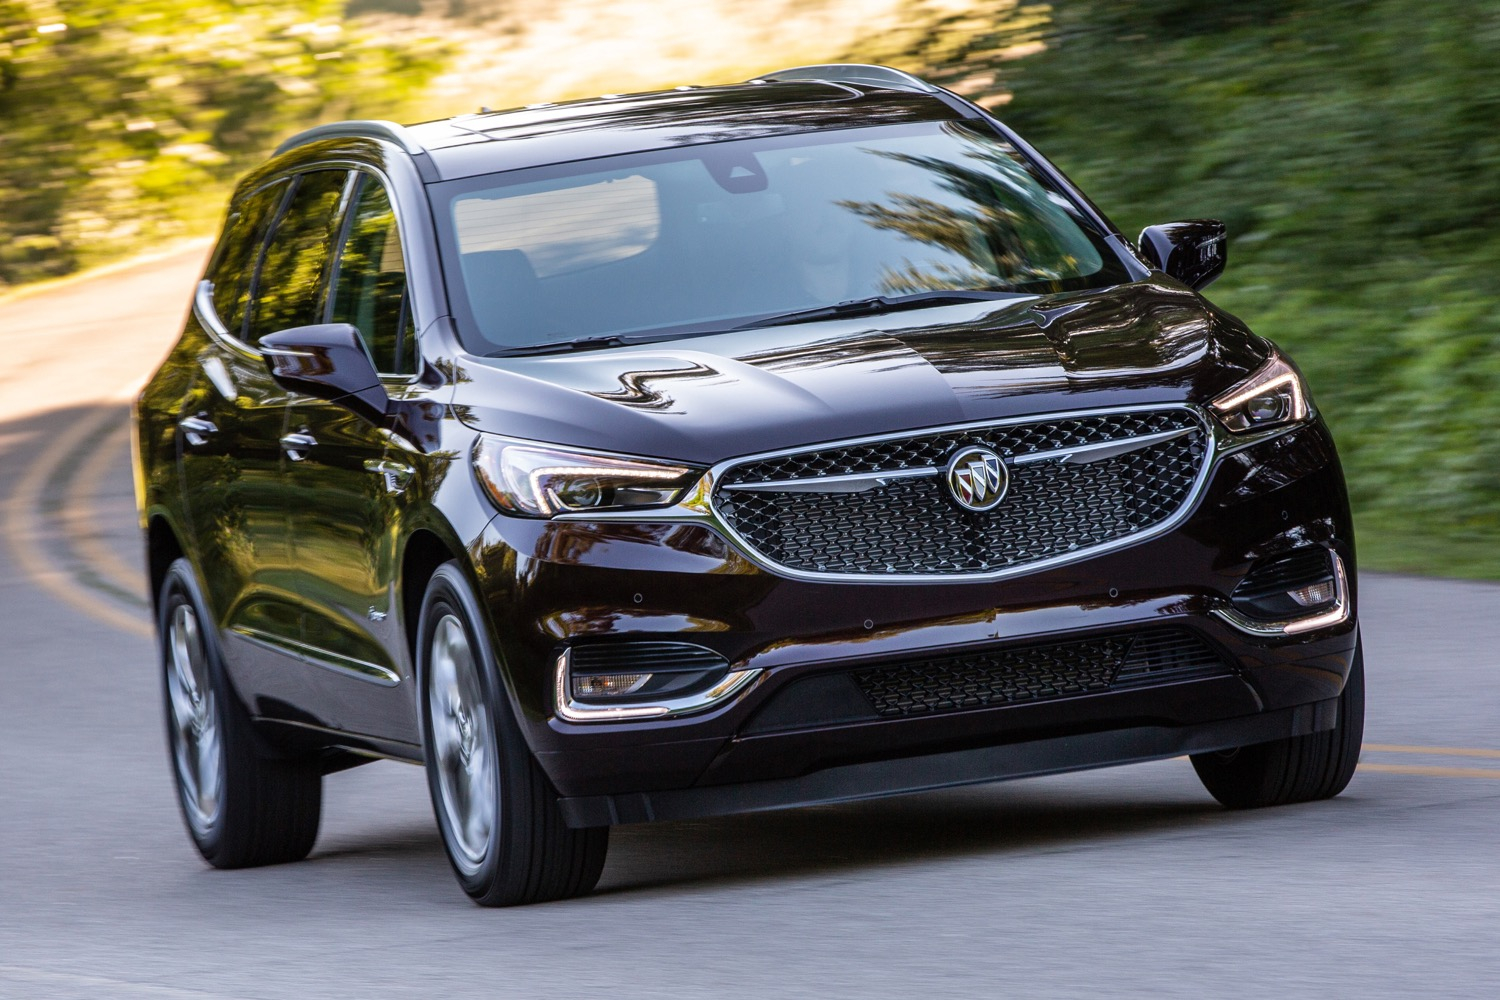 Buick Enclave Discount Totals $4,750 In February 2020 | Gm New 2021 Buick Enclave Avenir Engine, Specs, Lease